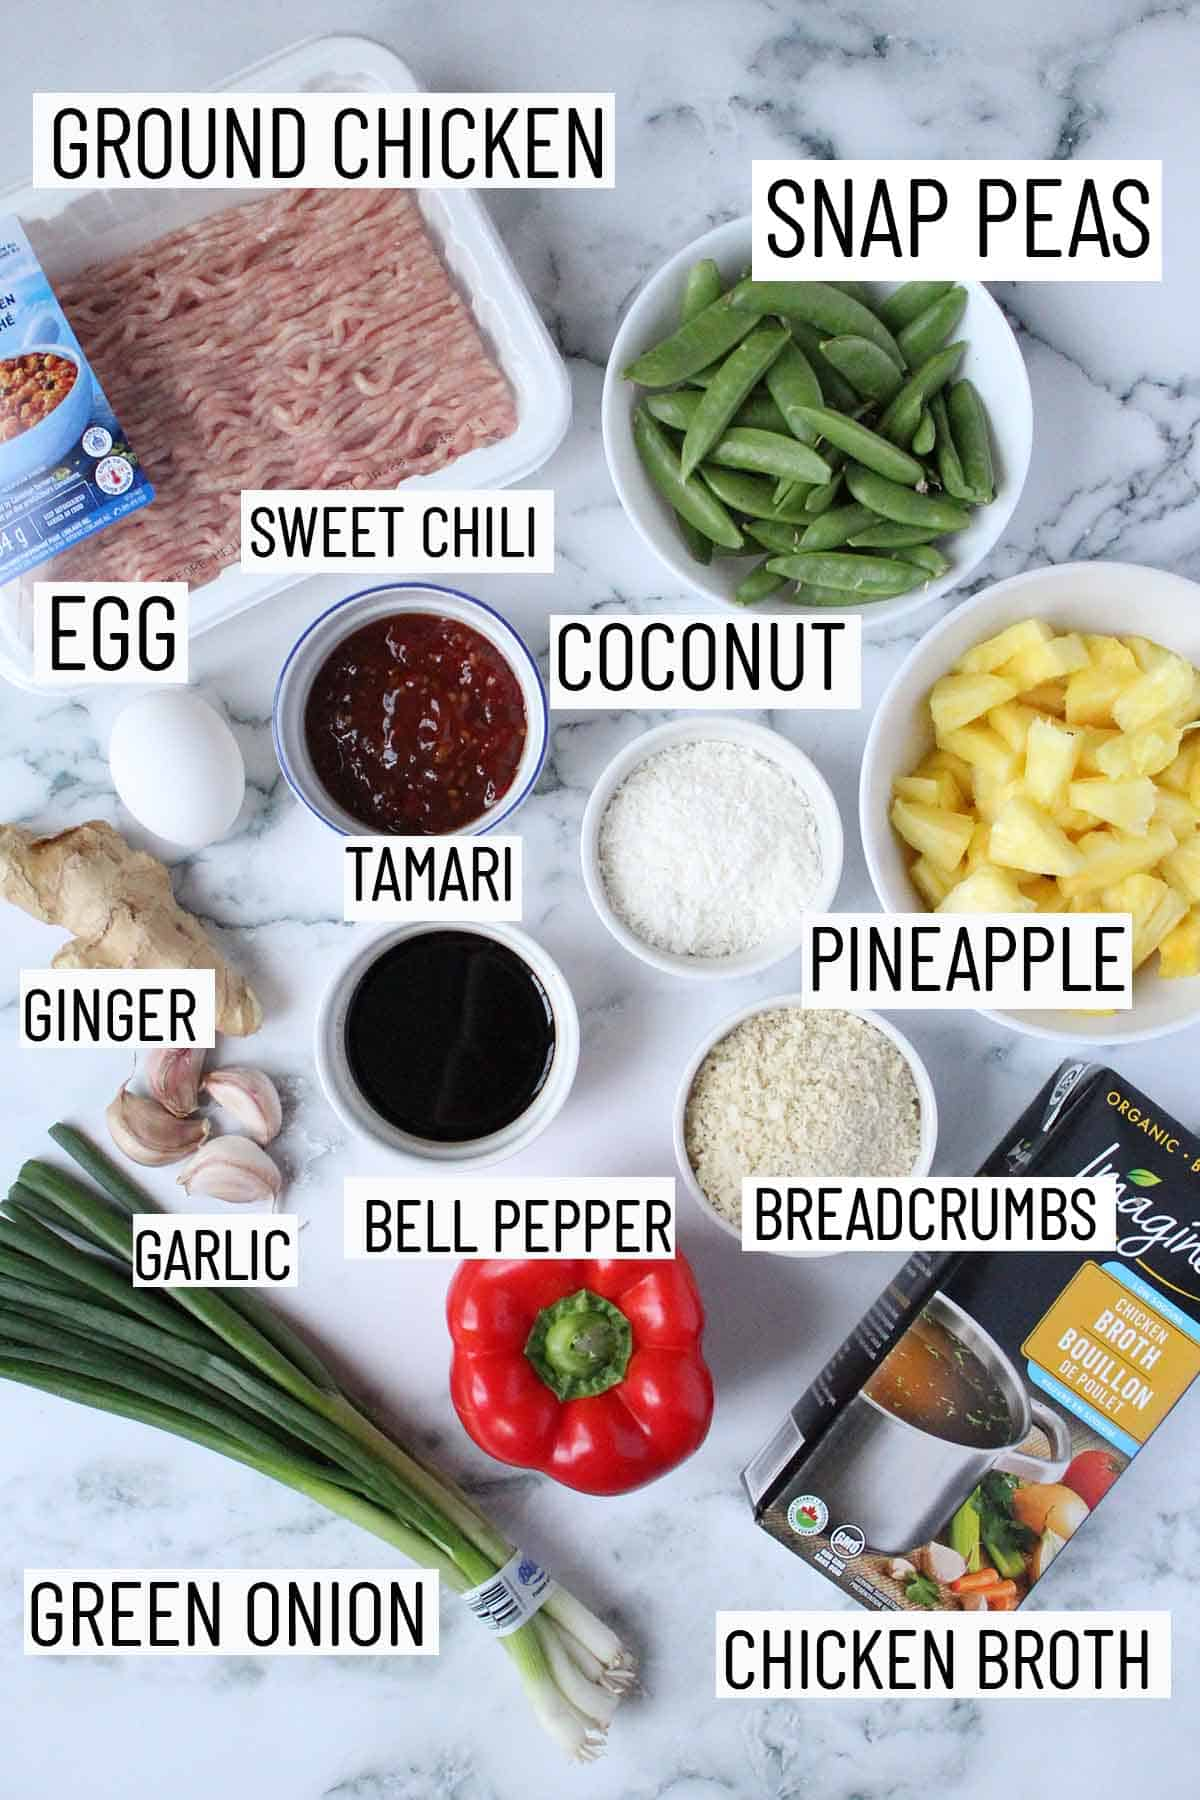 Flat lay image of portioned recipe ingredients including snap peas, ground chicken, sweet chili sauce, coconut, pineapple, tamari, egg, ginger, garlic, breadcrumbs, broth, bell pepper, and green onion.